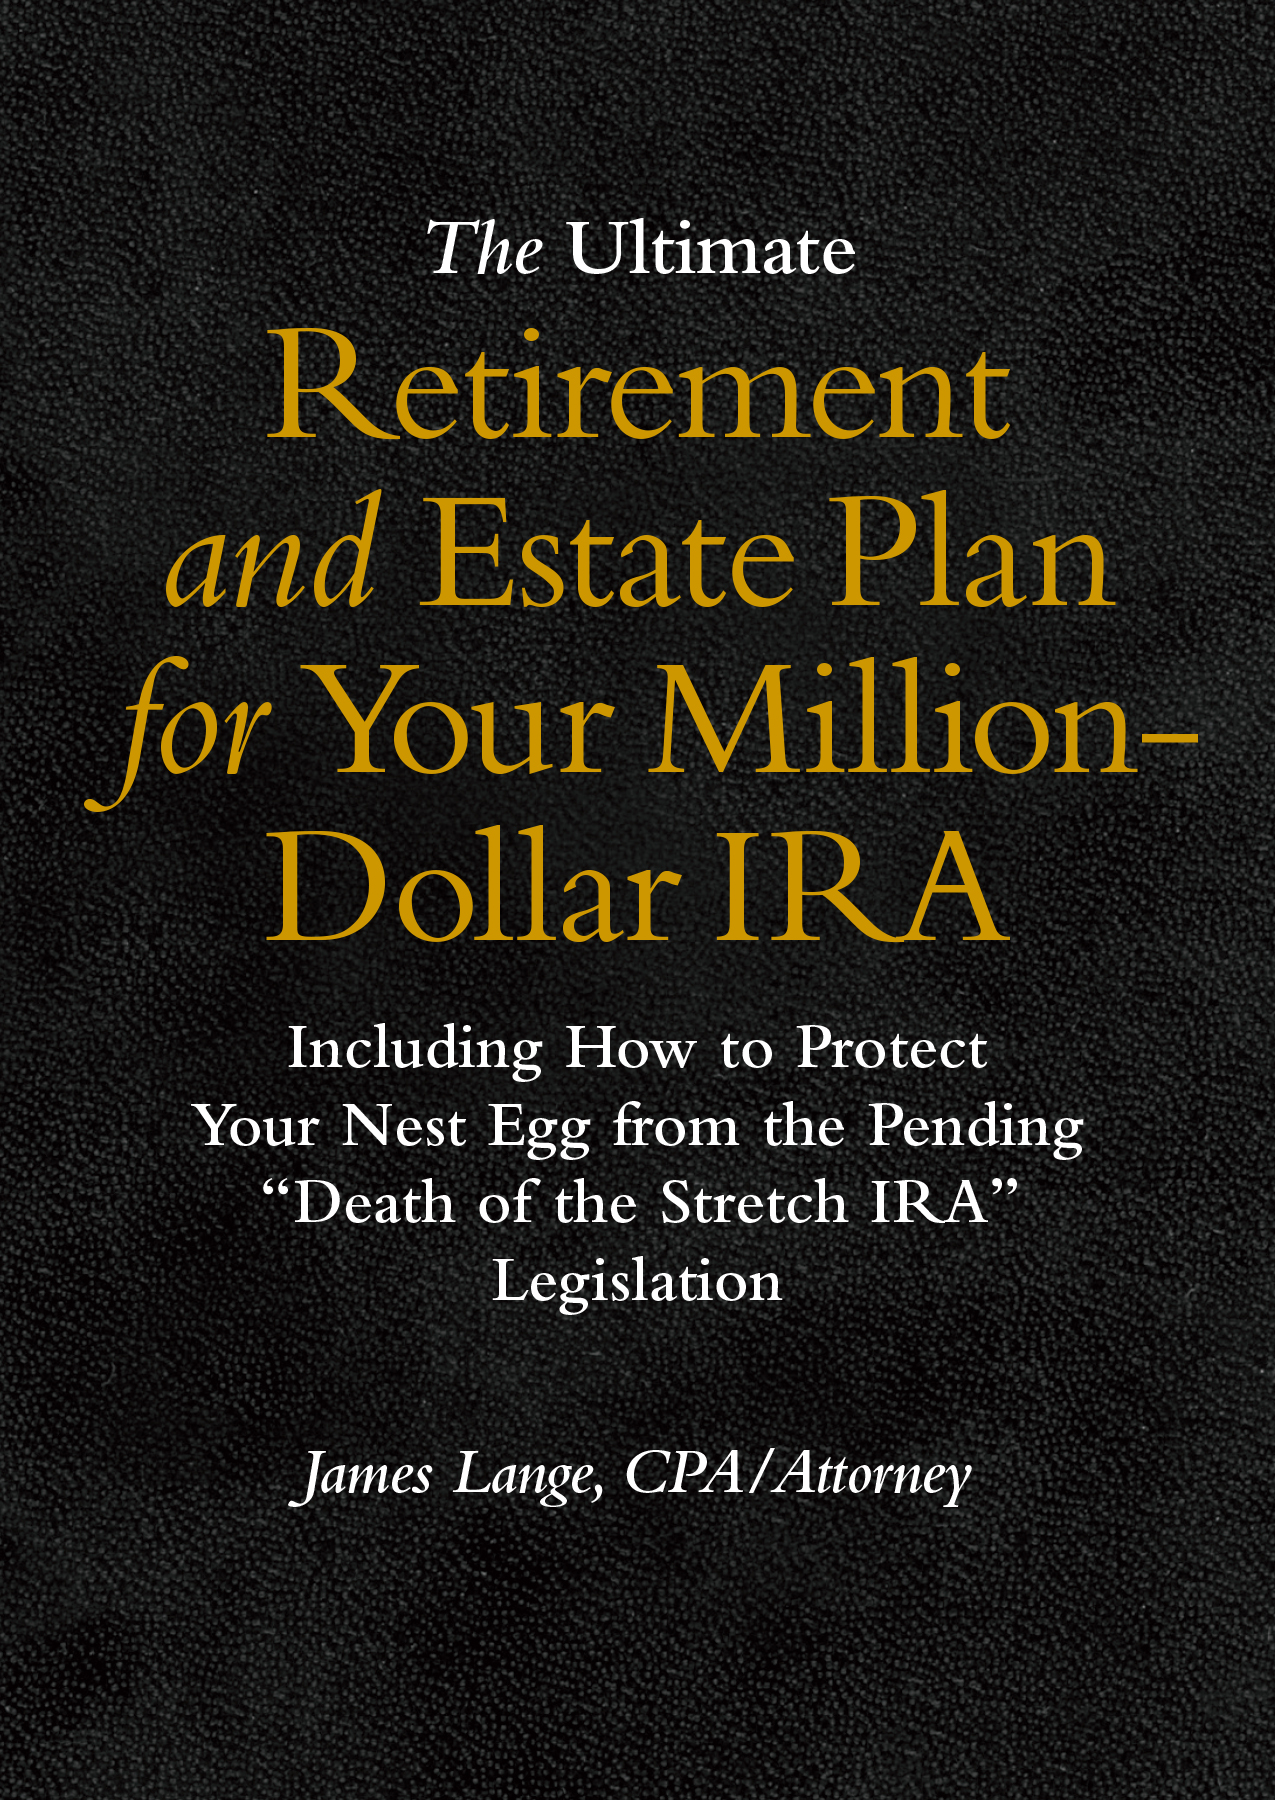 the-ultimate-retirement-and-estate-plan-for-your-million-dollar-ira-by-james-lange